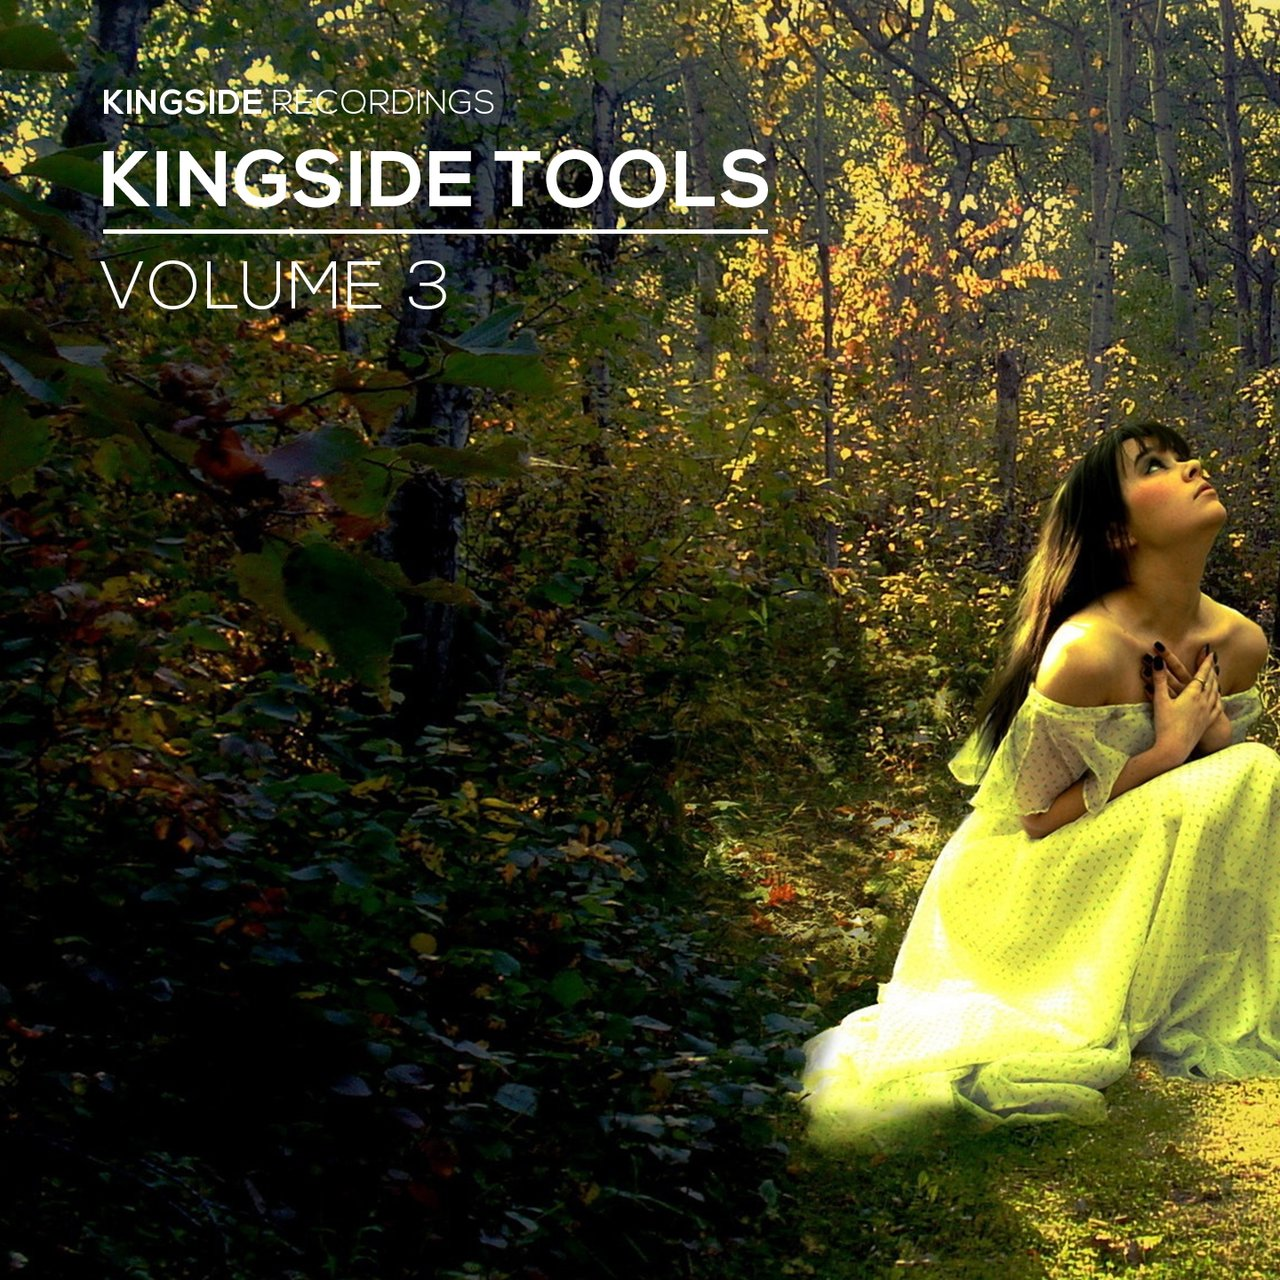 Kingside Tools